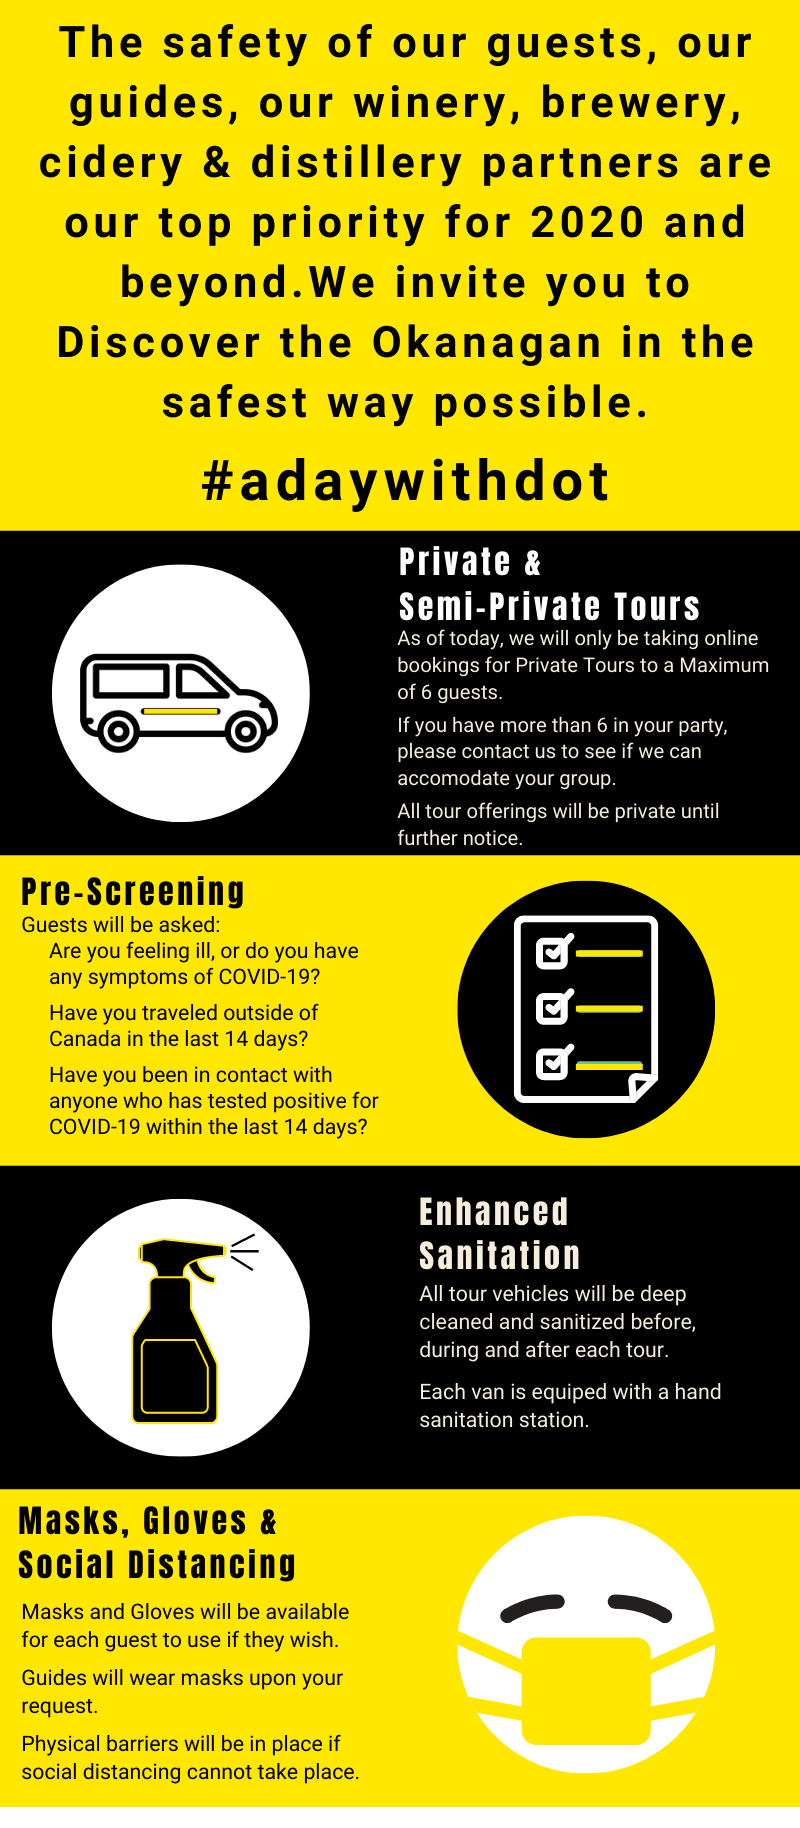 Discover Okanagan Tours Covid-19 Action Plan infographic